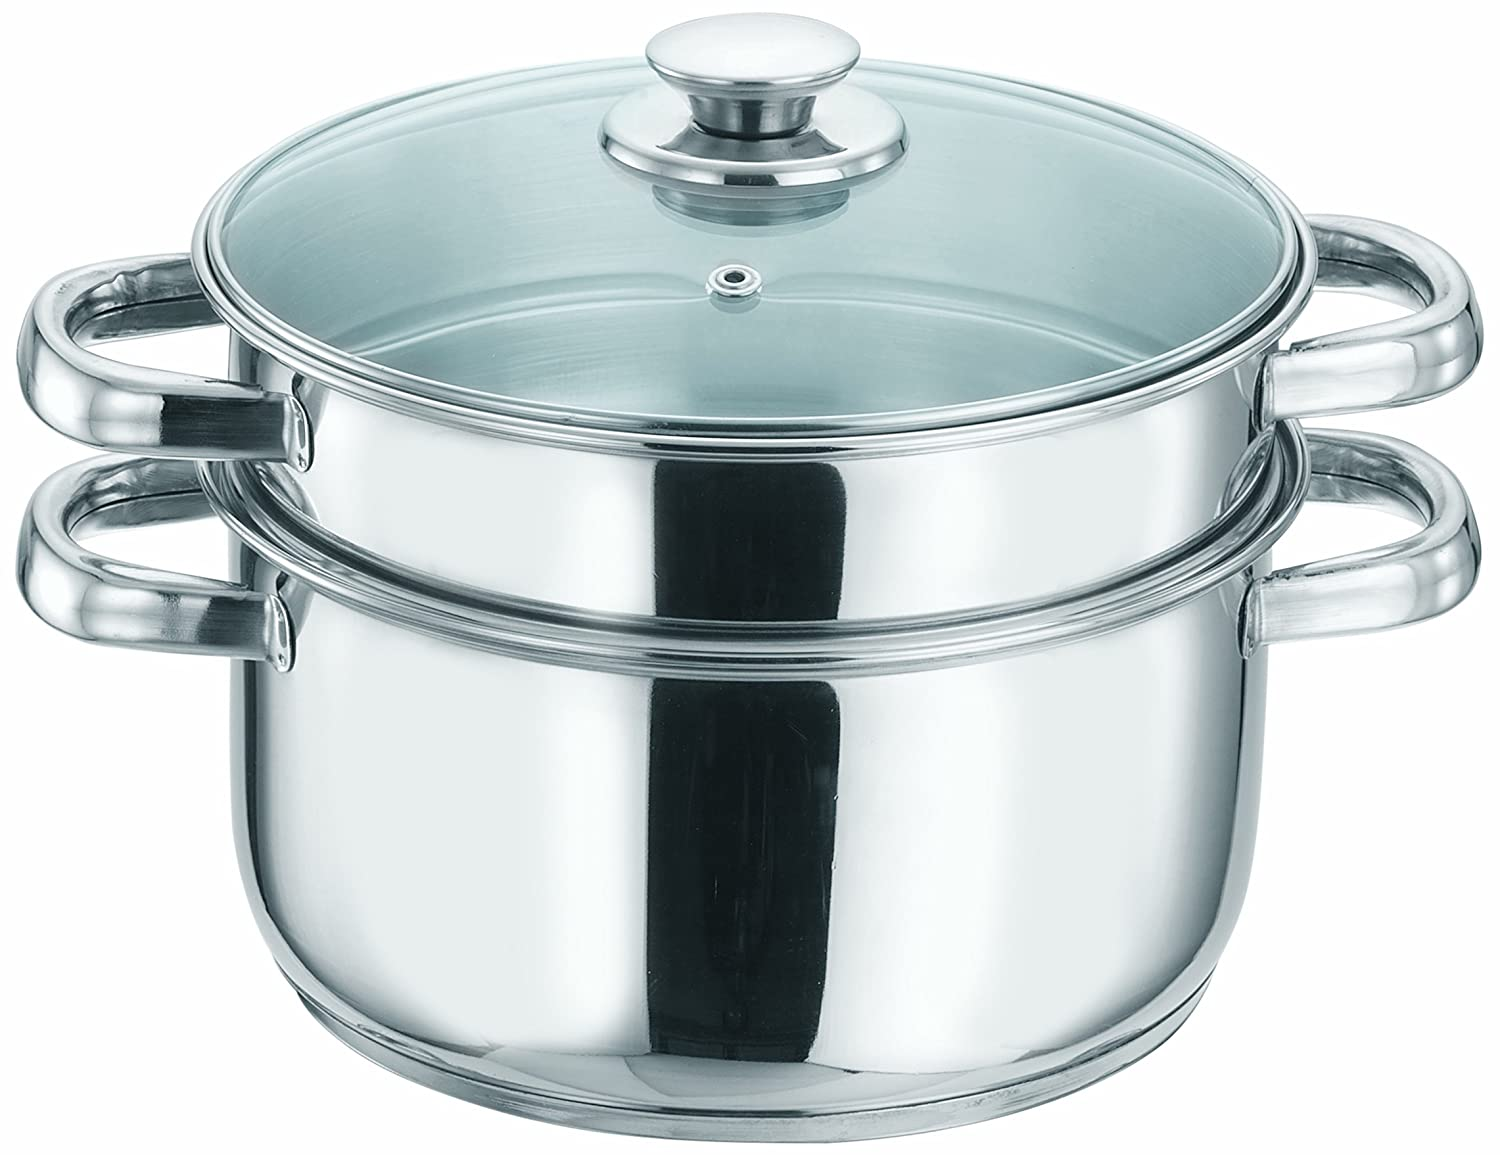 Buy Vinod Cookware 2 Tier Steamer, 18cm Online at Low Prices in ...